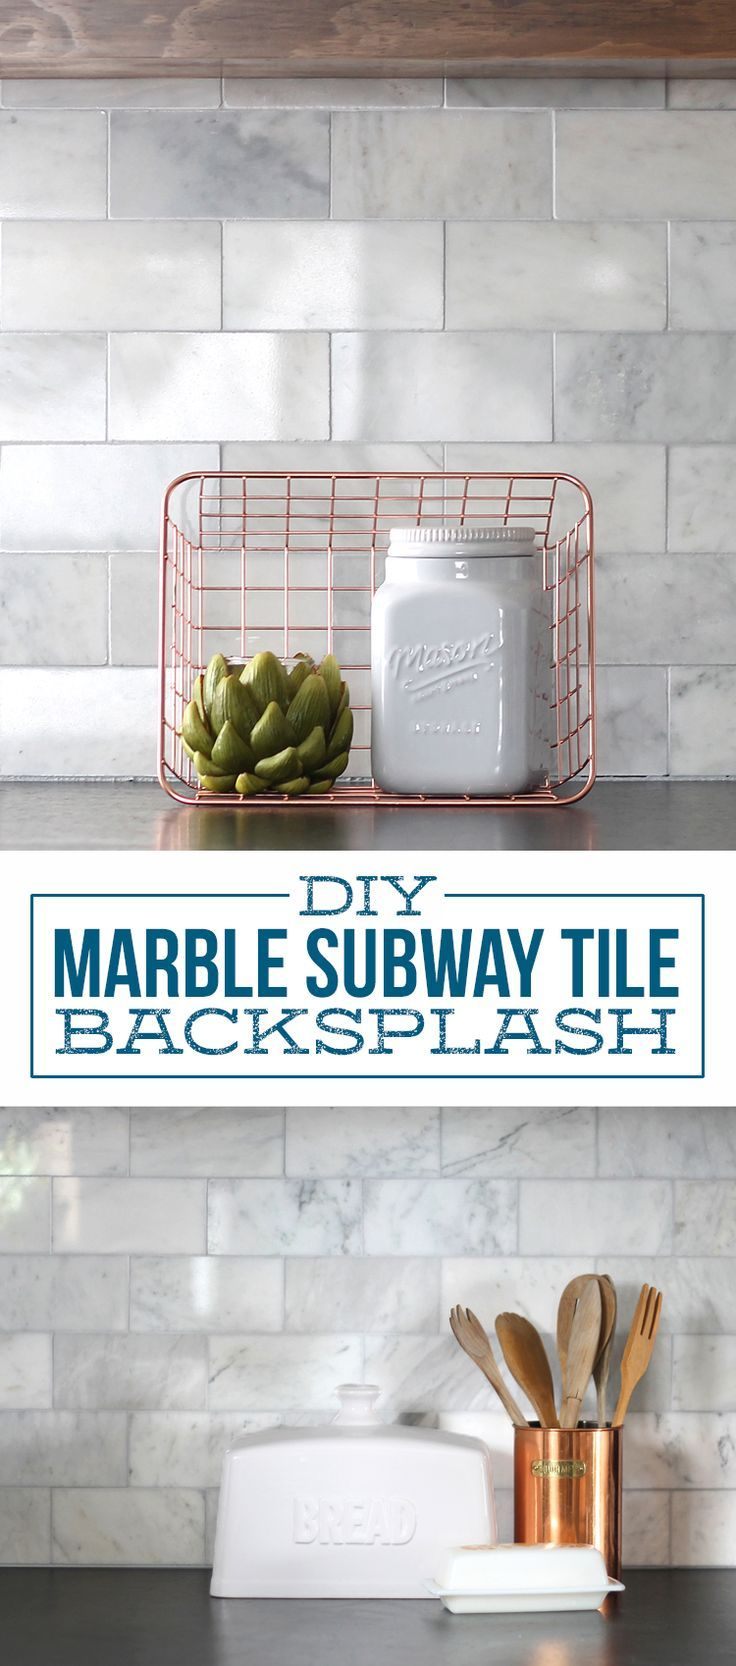 Tips tricks and what not to do when you install your own kitchen tips tricks and what not to do when you install your own kitchen backsplash specific tips for working with marble tile the best grout color to use with dailygadgetfo Choice Image